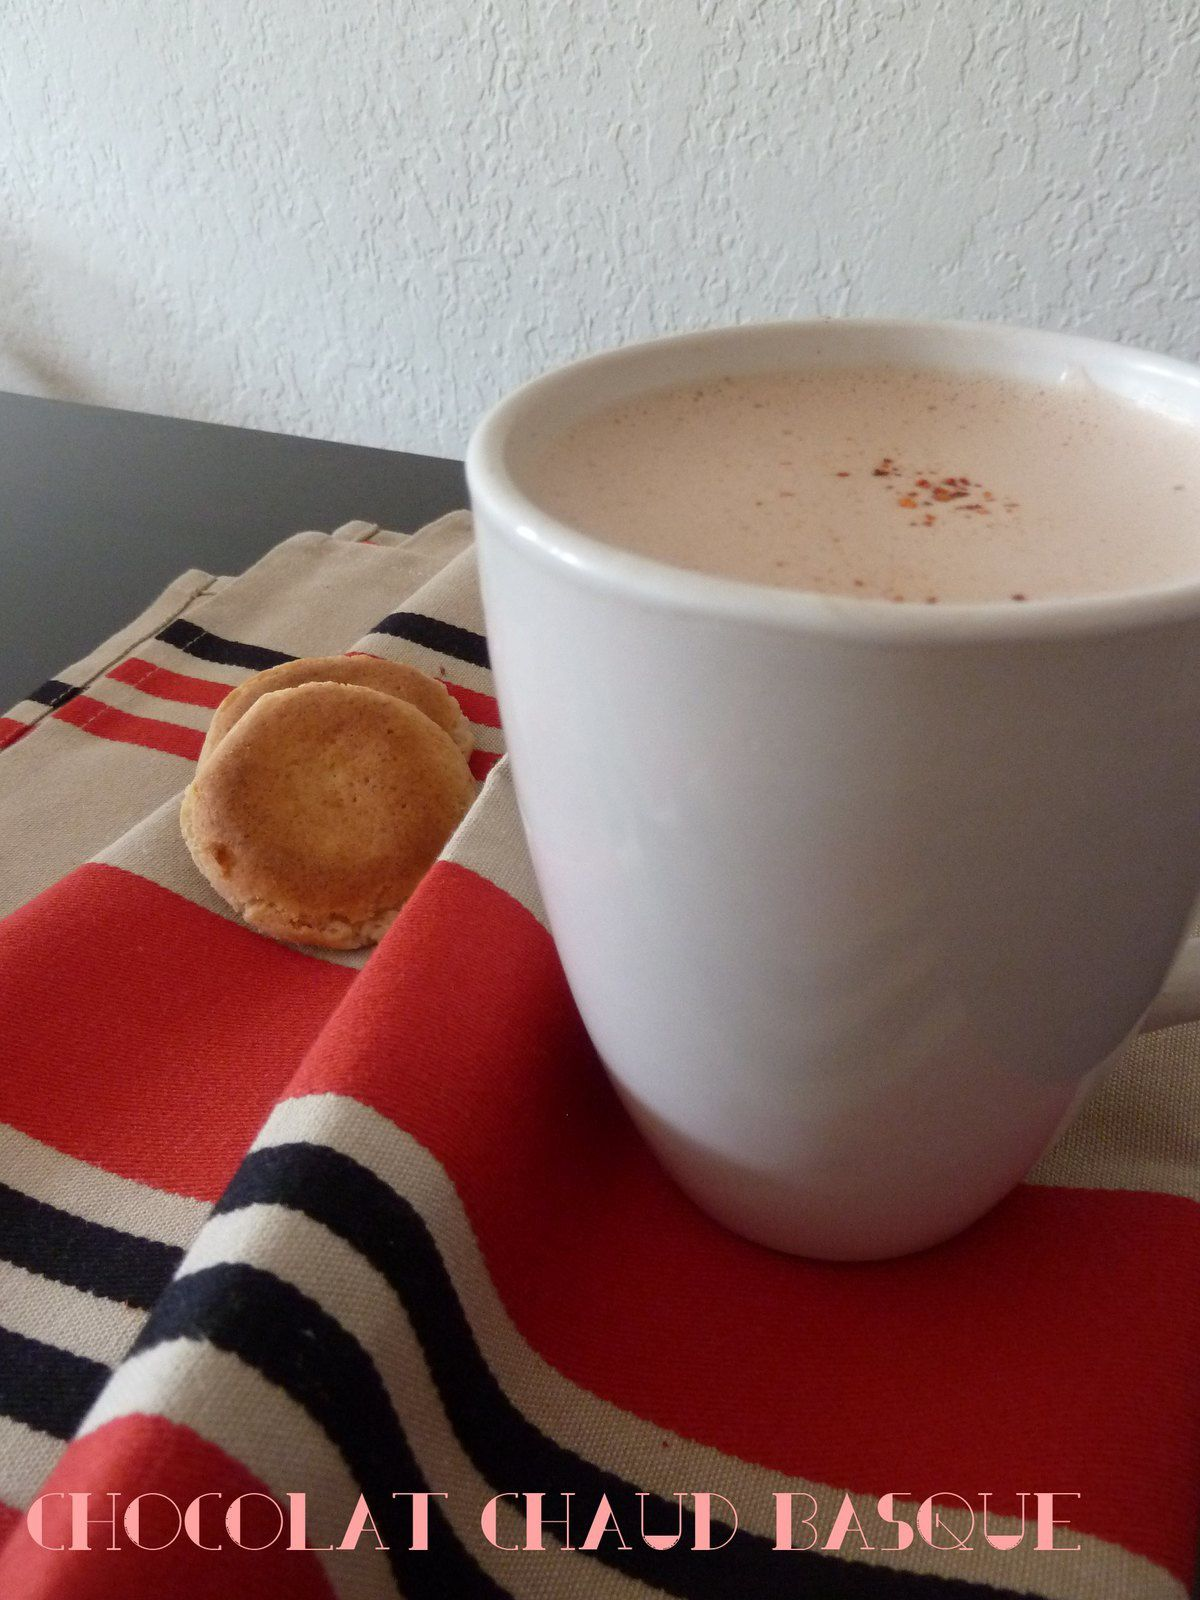 Chocolat chaud basque